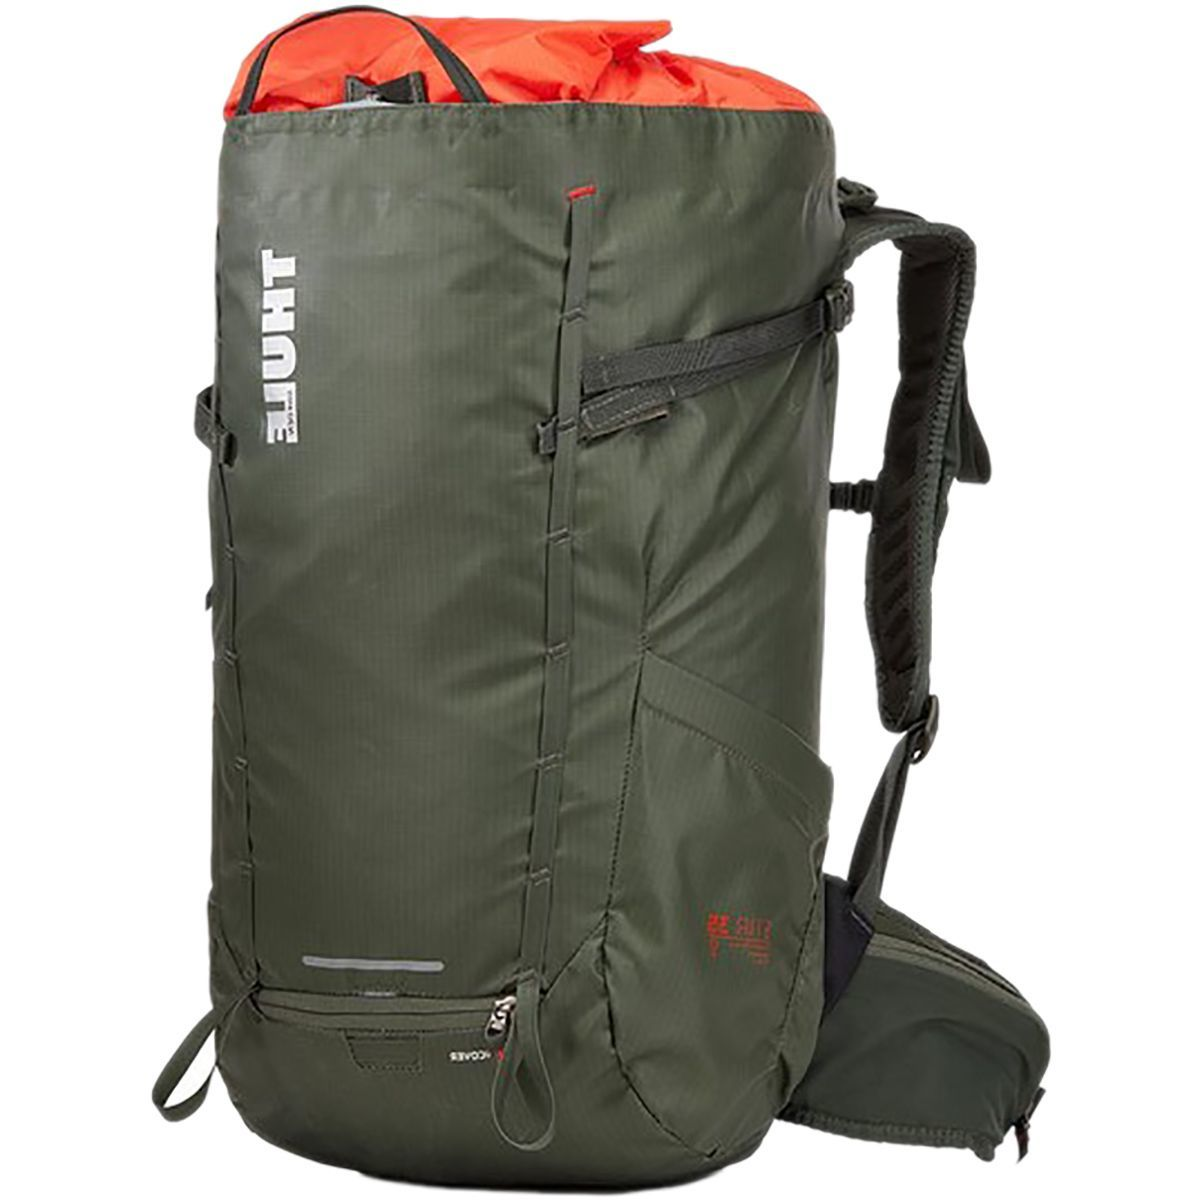 Thule Stir Hiking 35L Backpack - Women's